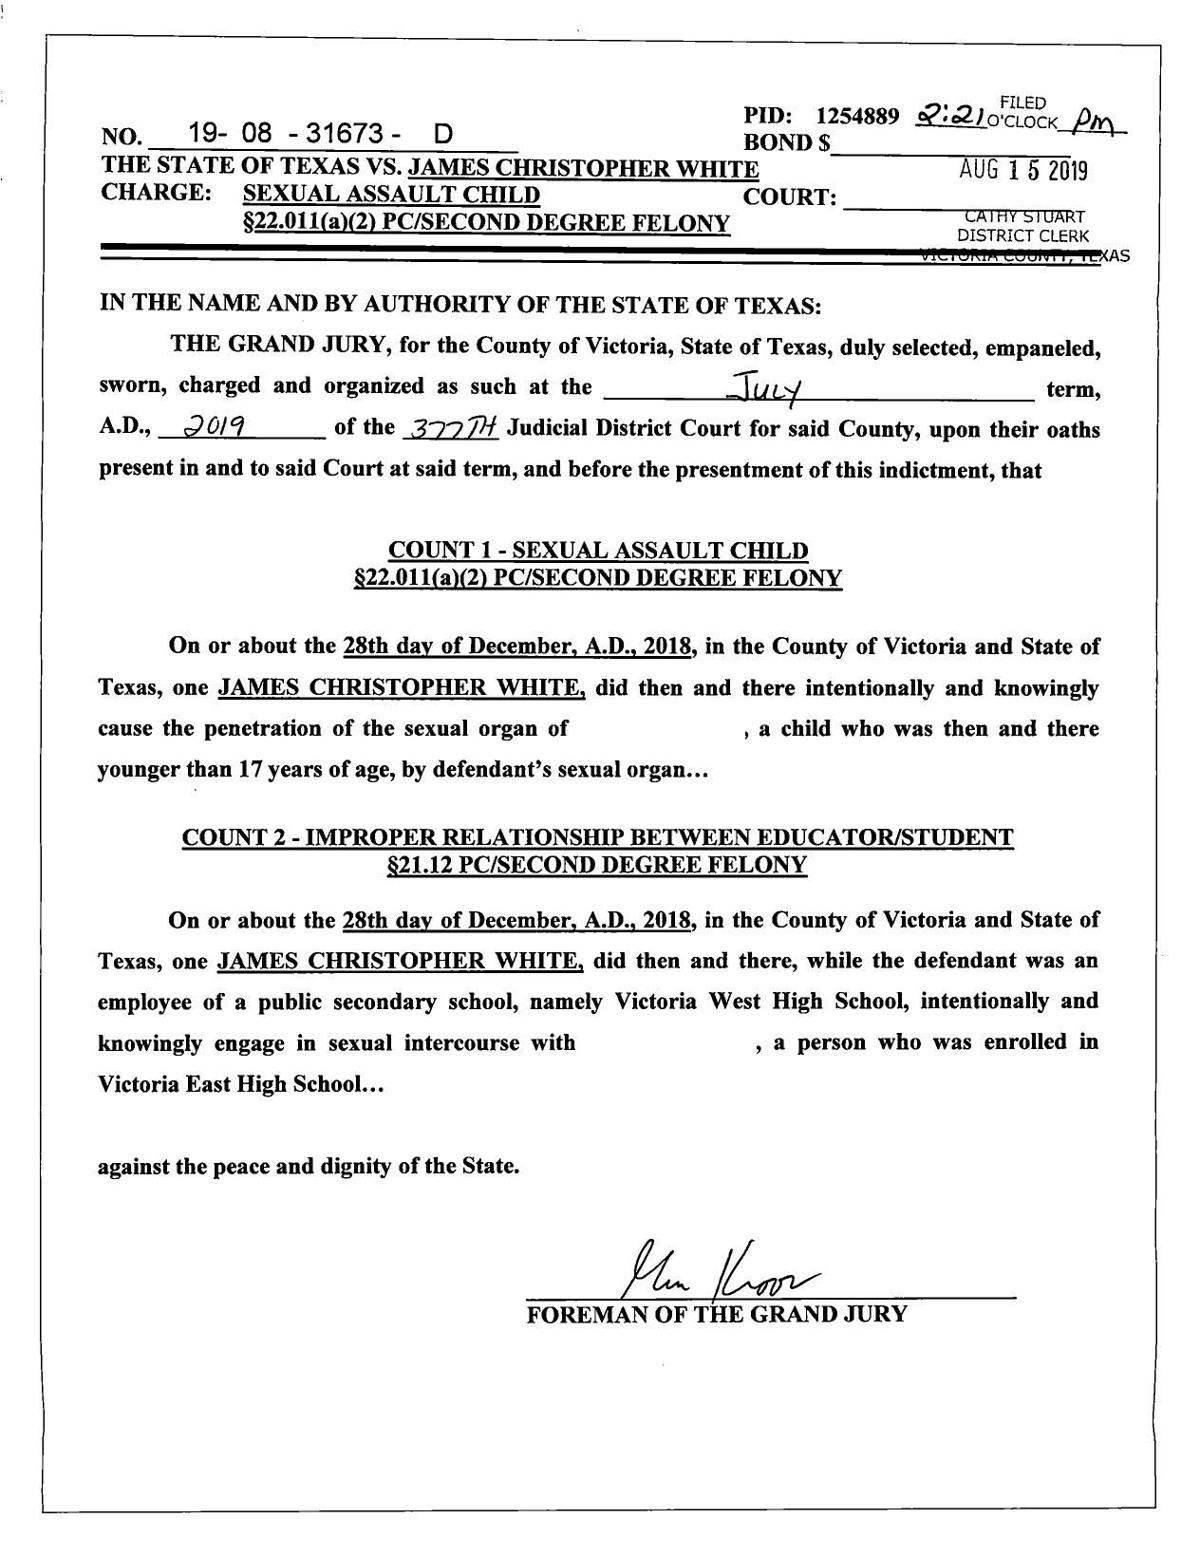 Indictment for James Christopher White